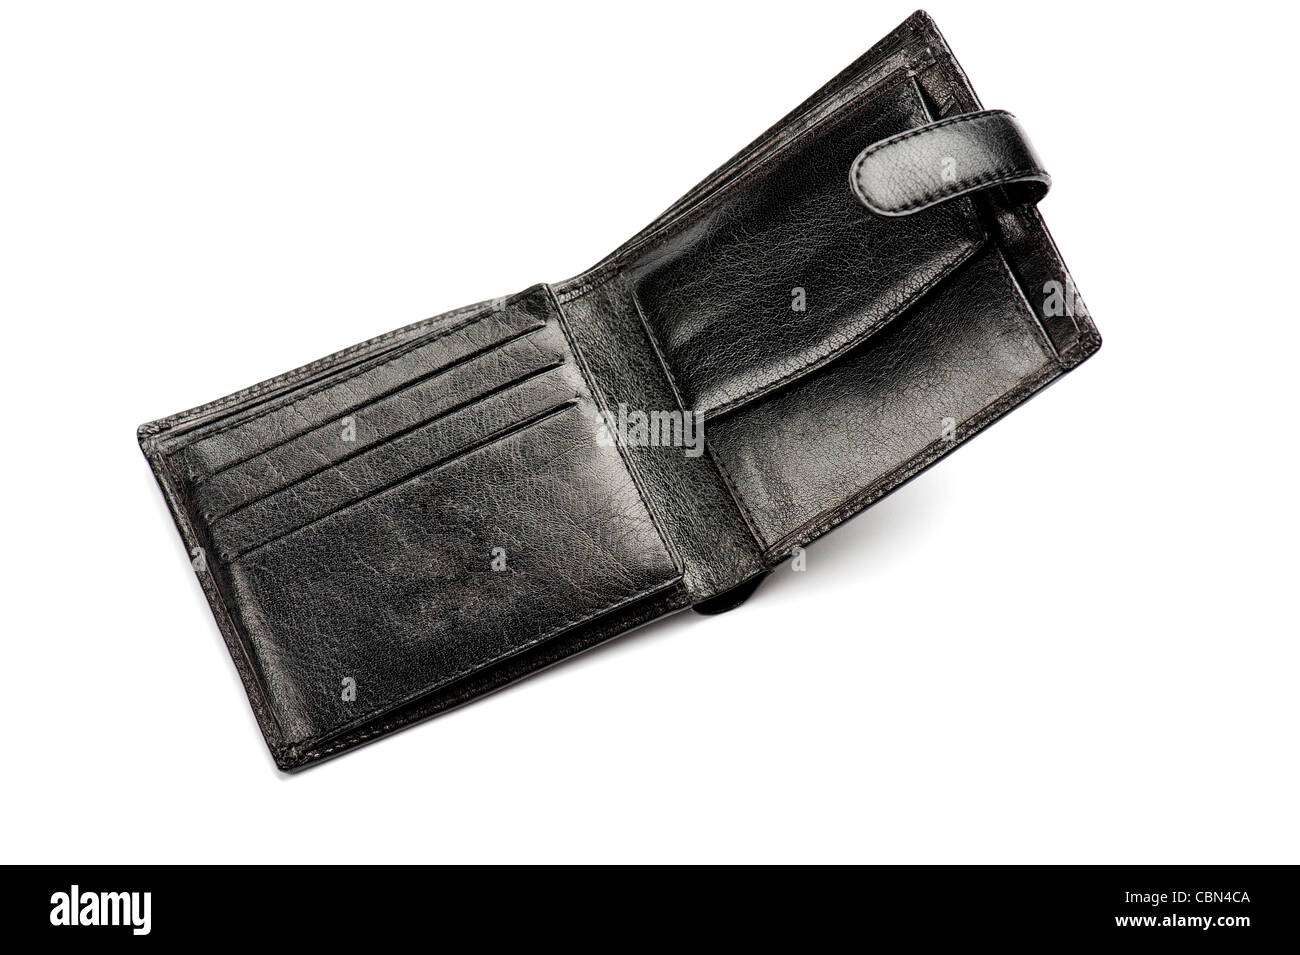 An empty wallet, close-up - Stock Image